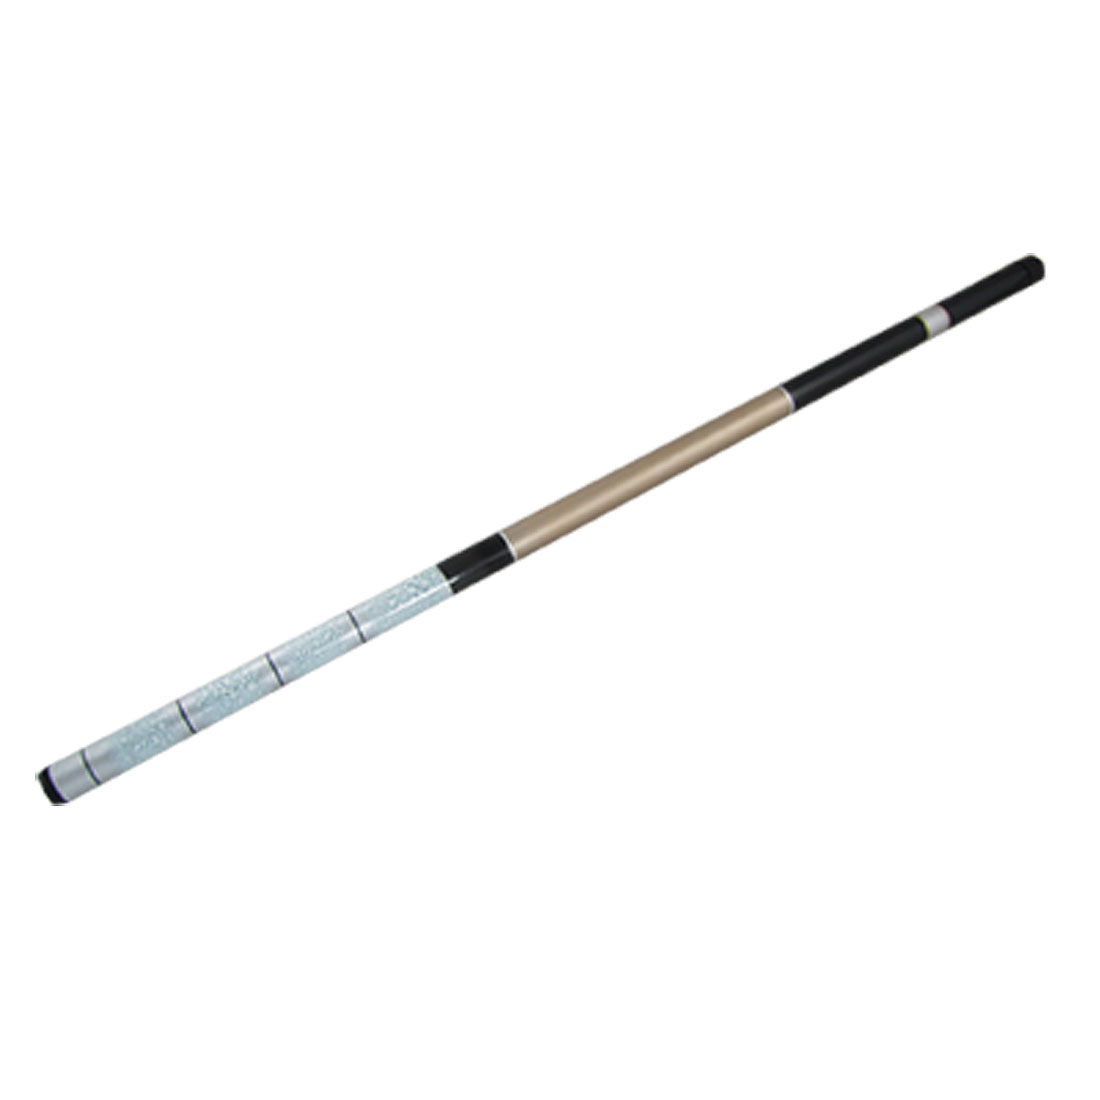 Freshwater 3.98M 8 Sections Telescopic Fishing Rod Fish Pole